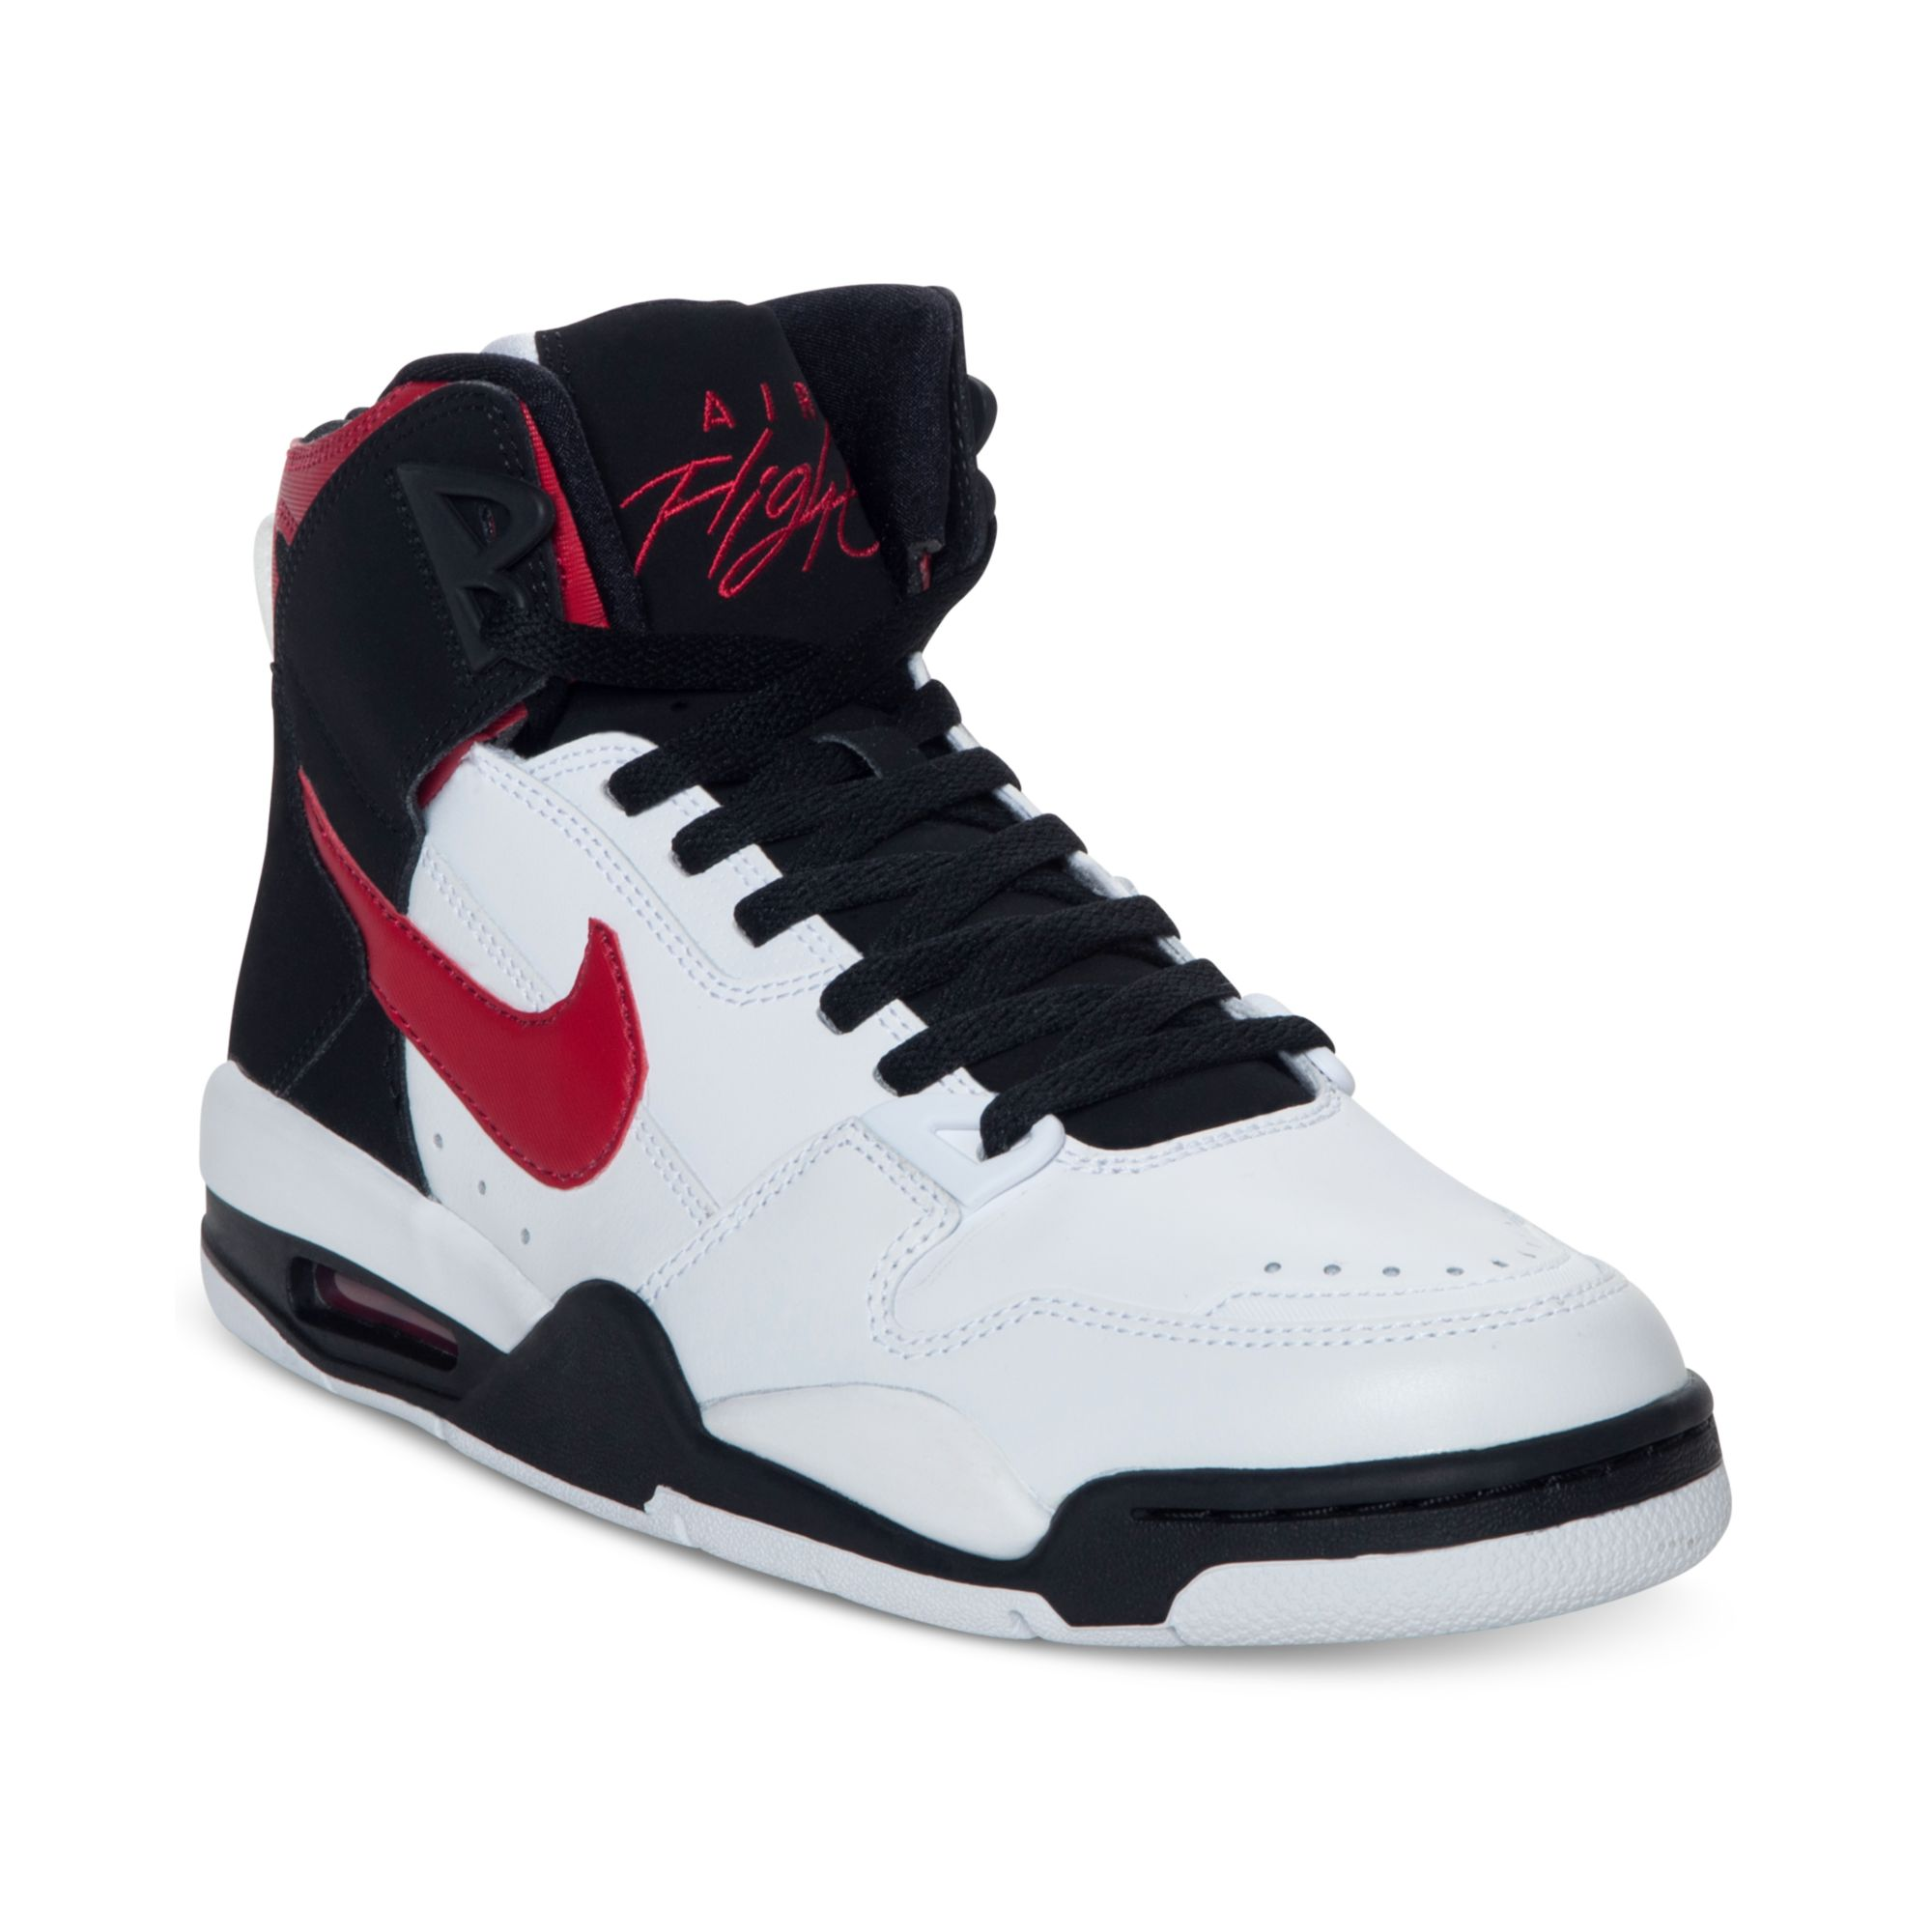 official site fashion styles the best attitude Nike Flight Condor High Si Basketball Sneakers in White for Men - Lyst